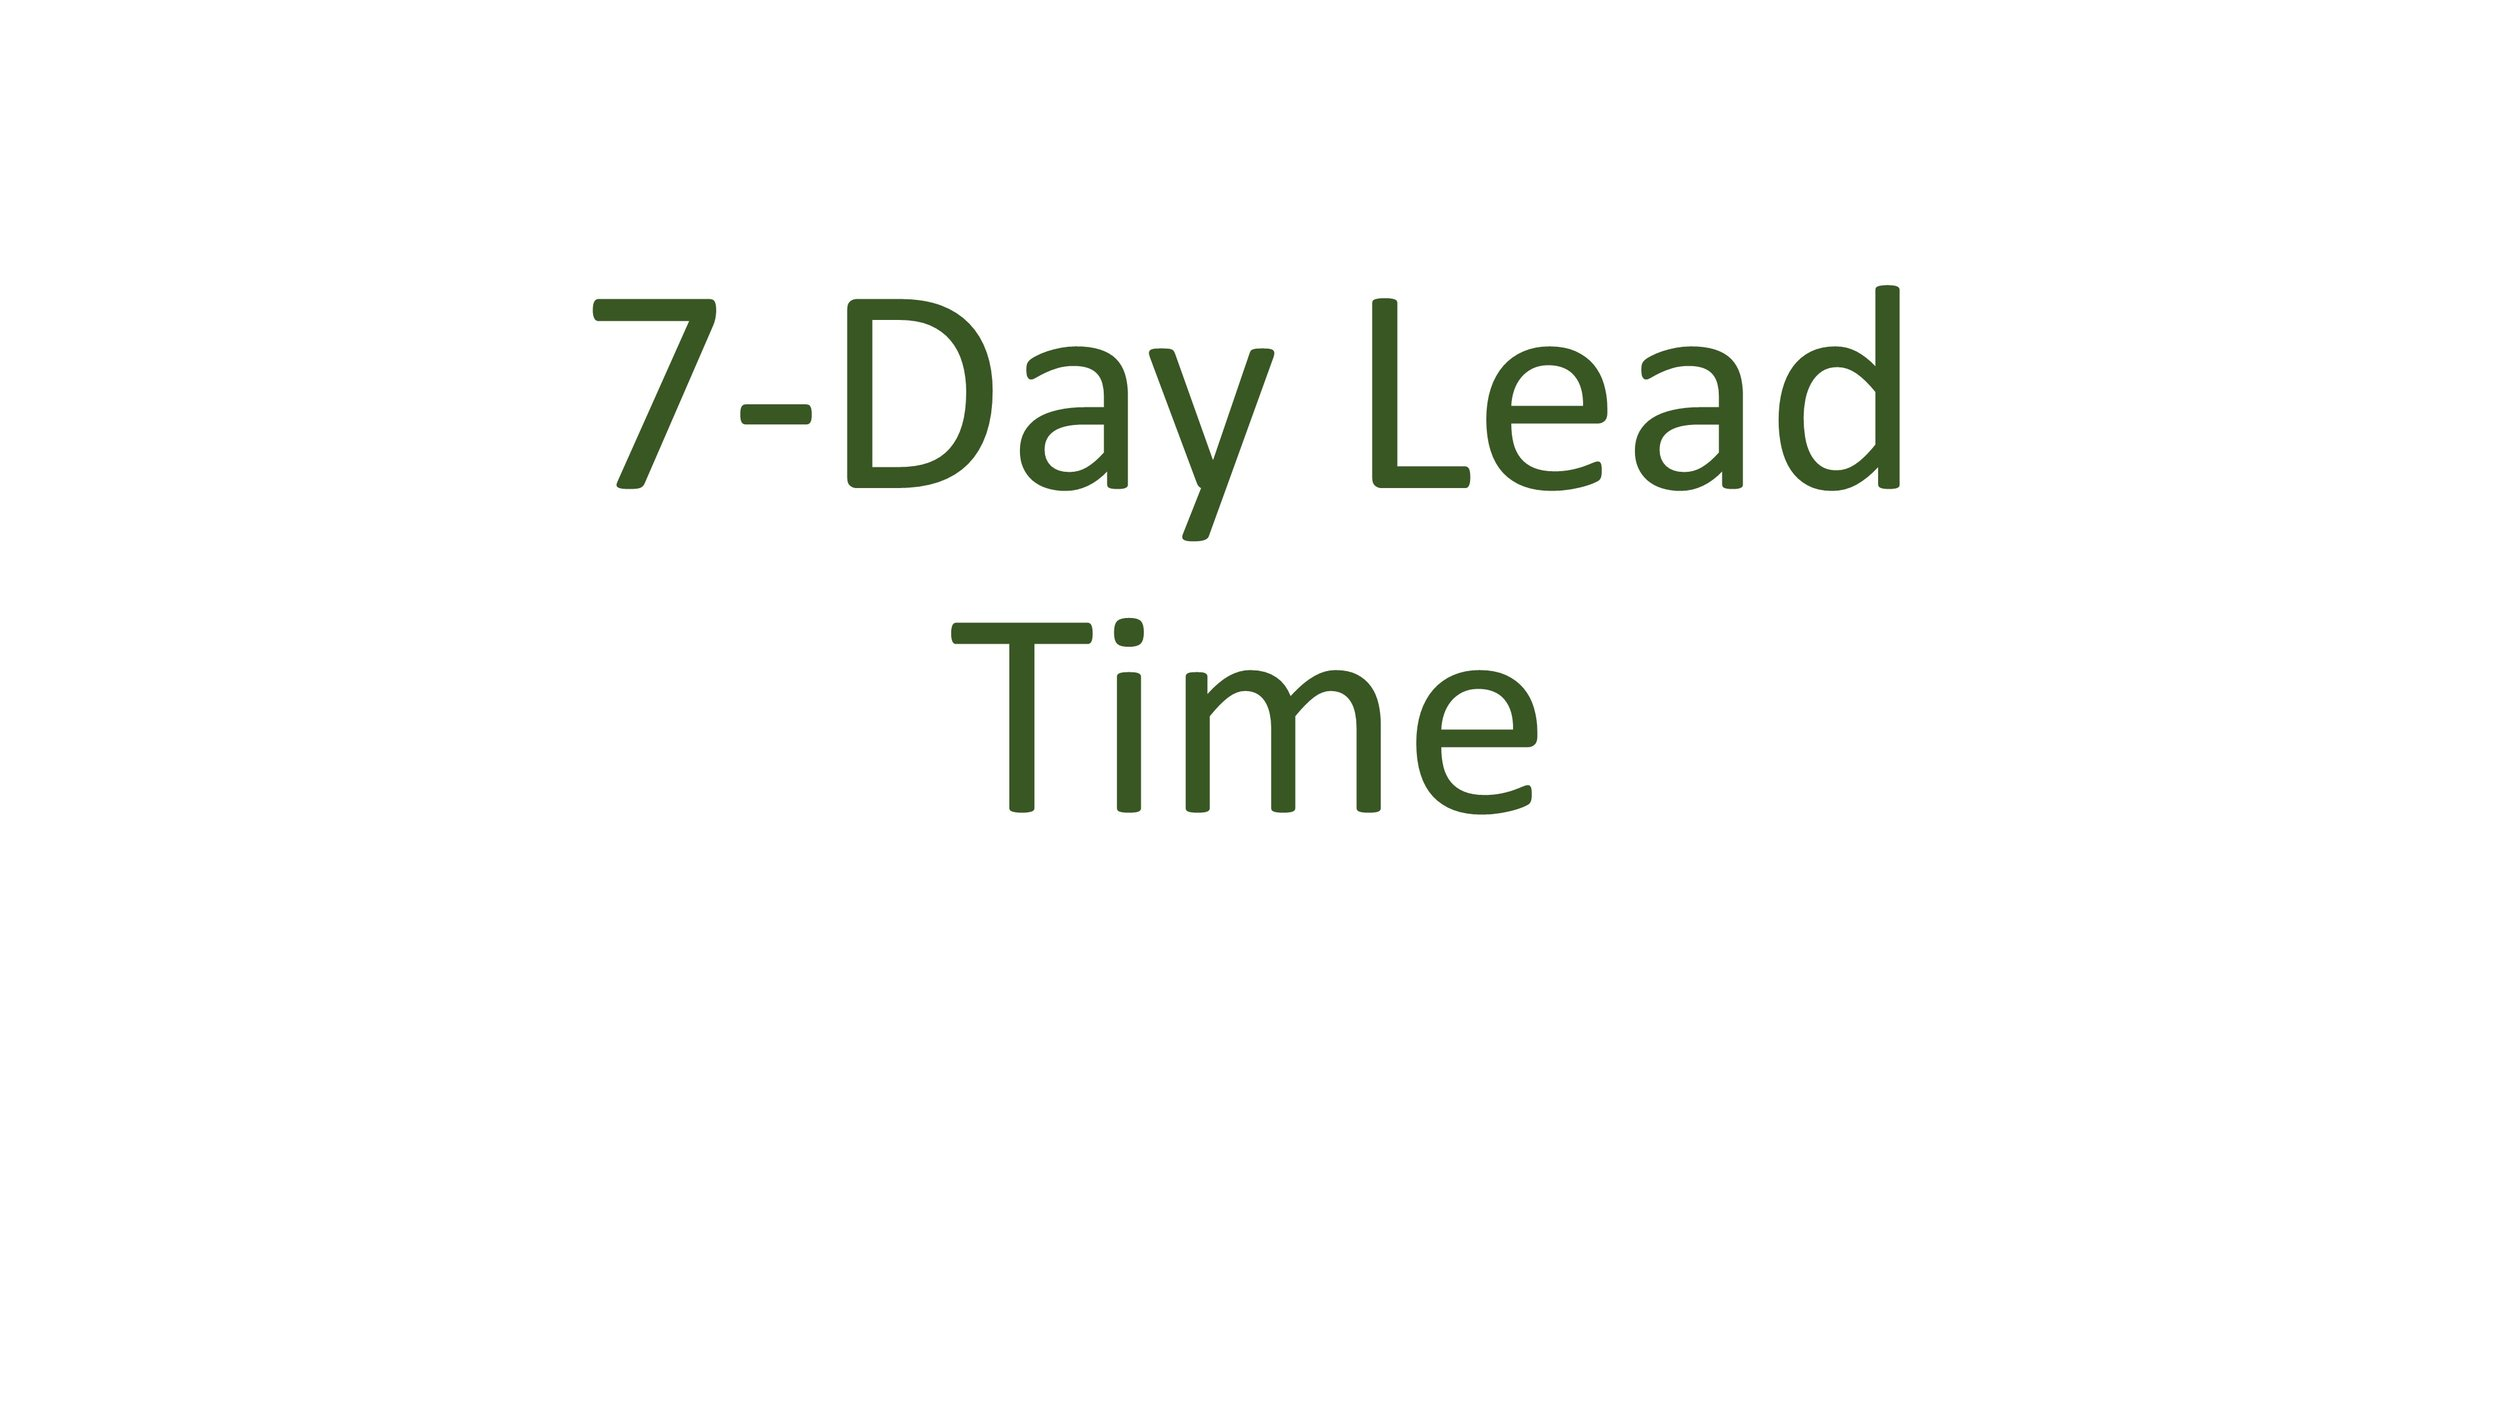 For commercial orders we require a 7-day lead time.  Please note that if you are a new commercial account, we will need to talk to you about logistics of delivery and supply, which may extend our standard 7-day lead time. We will call you soon after receiving your order to confirm details.  We do not deliver on all major U.S. holidays, such as New Year's Day, Memorial Day, Independence Day, Labor Day, Columbus Day, Veterans Day, Thanksgiving Day, and Christmas Day.